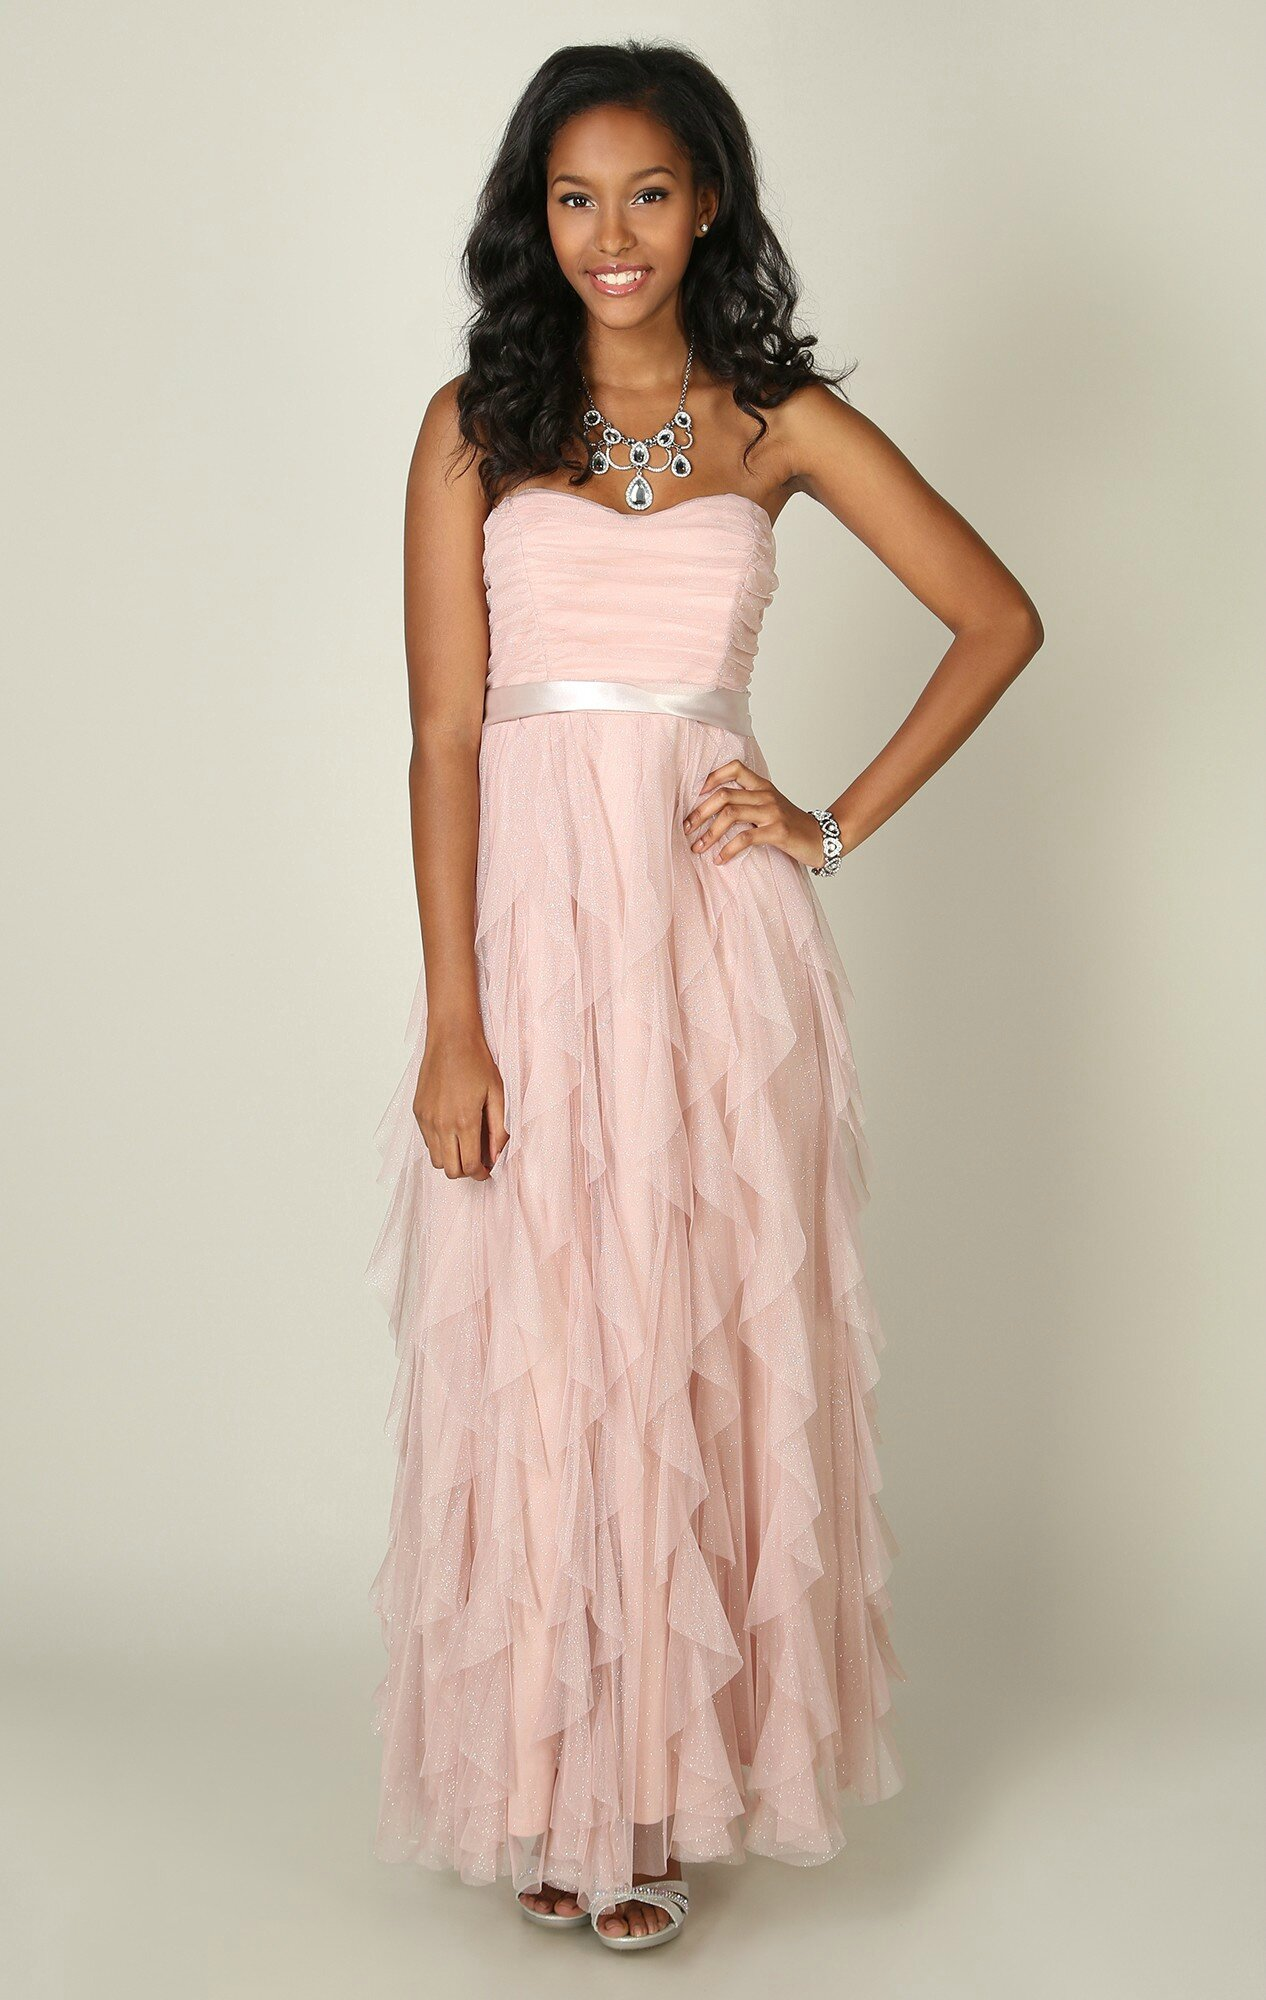 Strapless Ball Gown Dress with Satin Tie Waist and Tendril Skirt ...